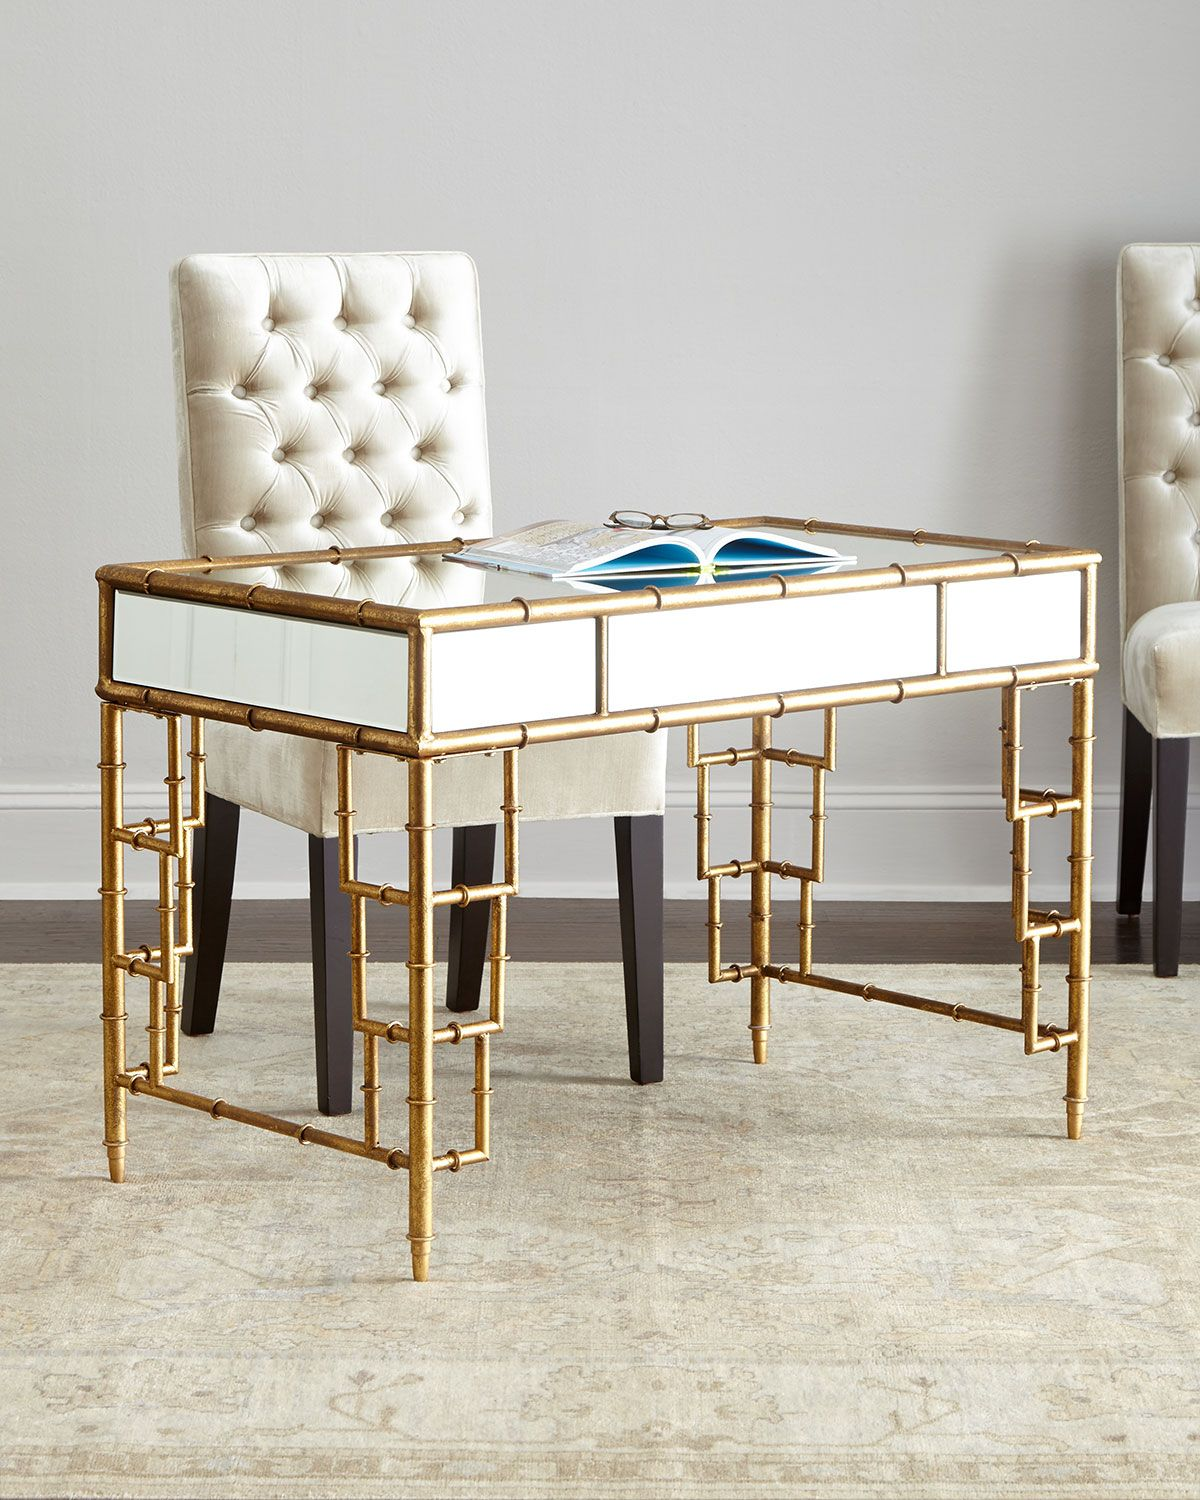 Lyle mirrored writing desk in intricate interiors pinterest